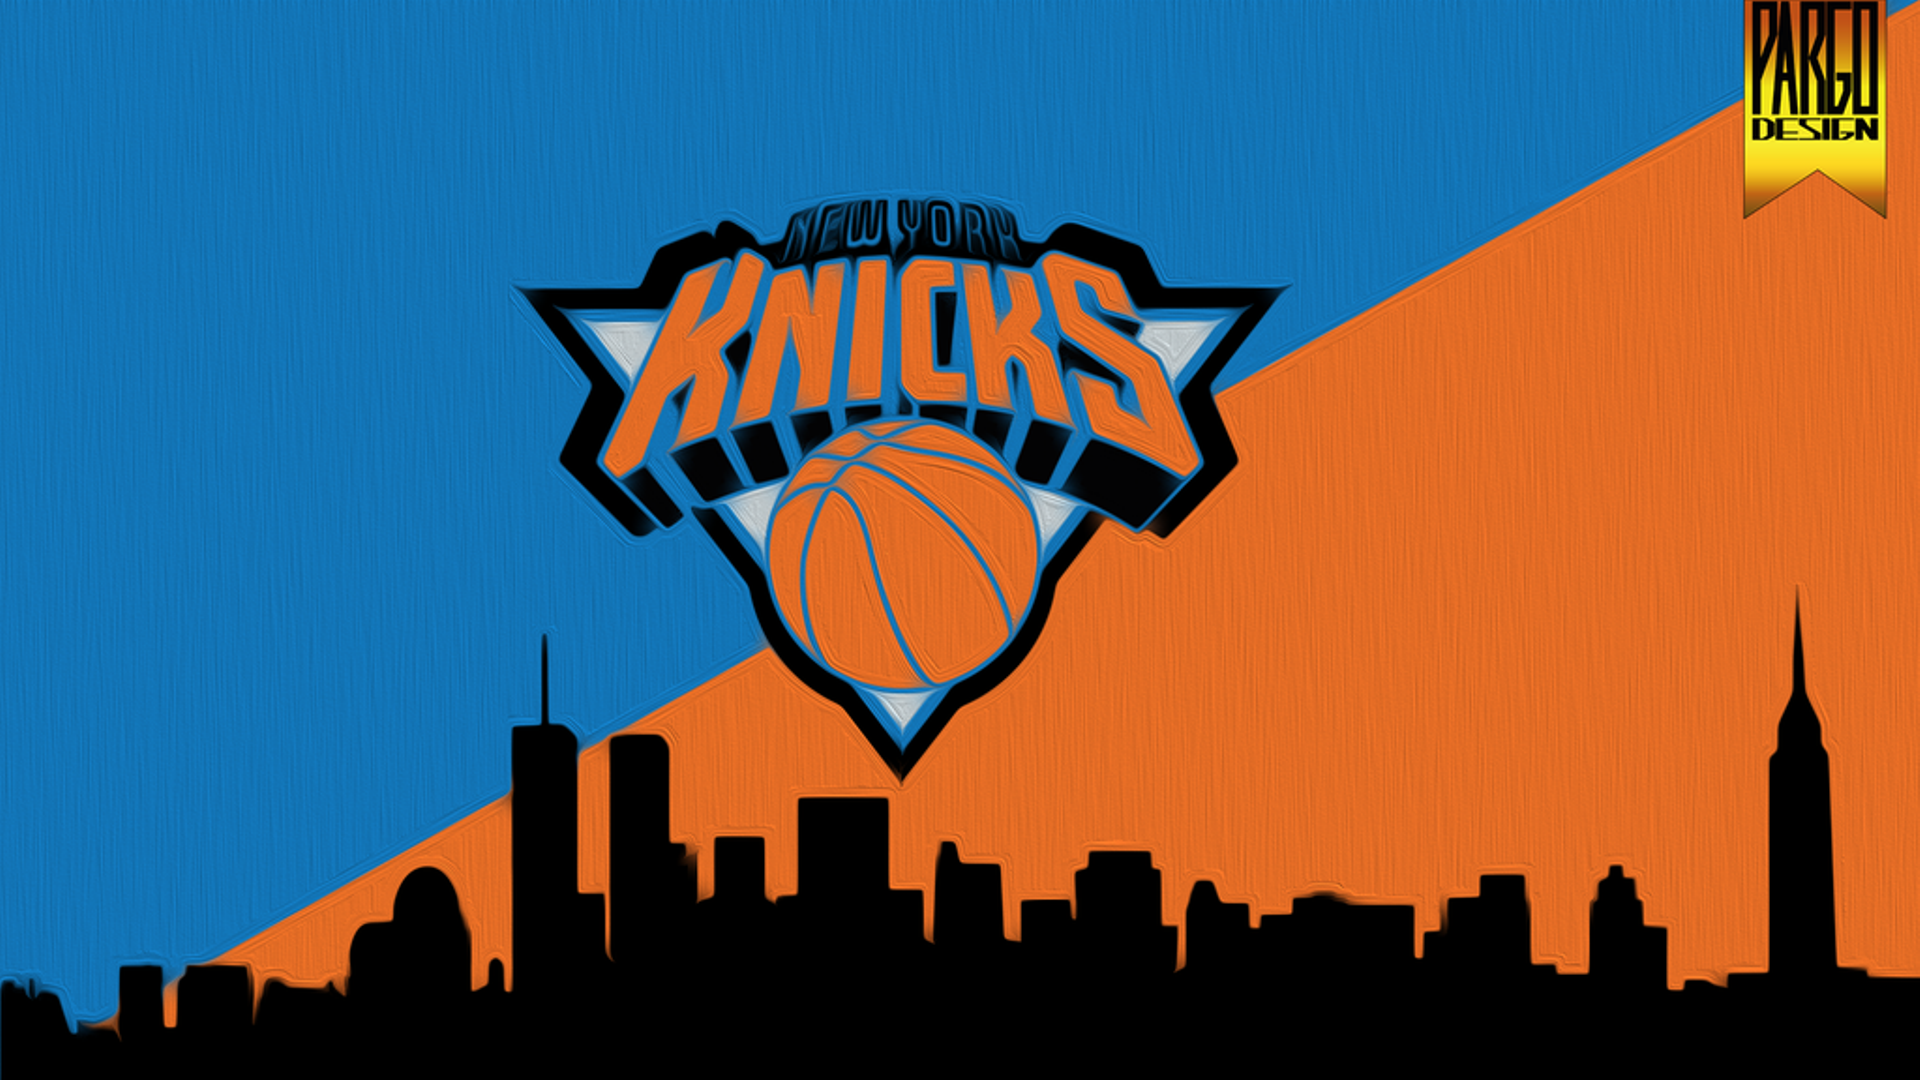 1920x1080 - New York Knicks Wallpapers 15